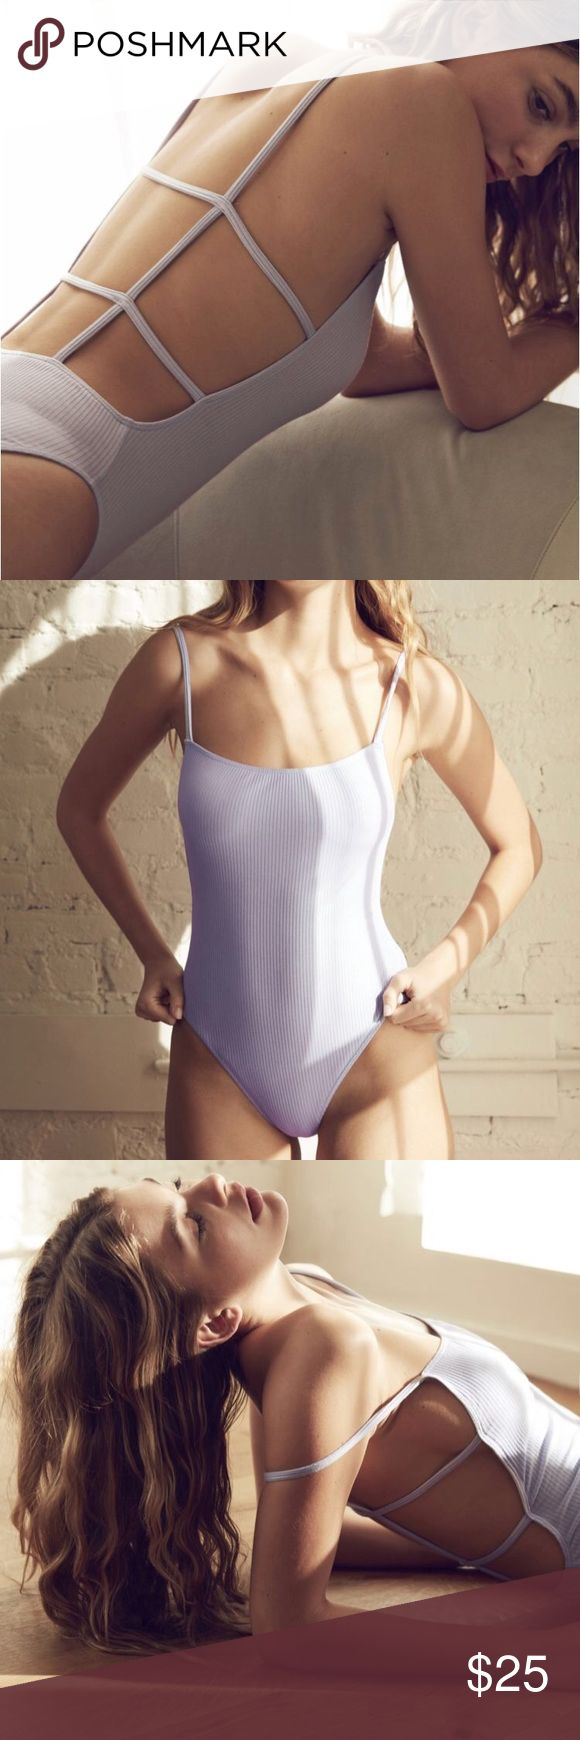 URBAN OUTFITTERS ANNIE STRAPPY BACK BODYSUIT URBAN